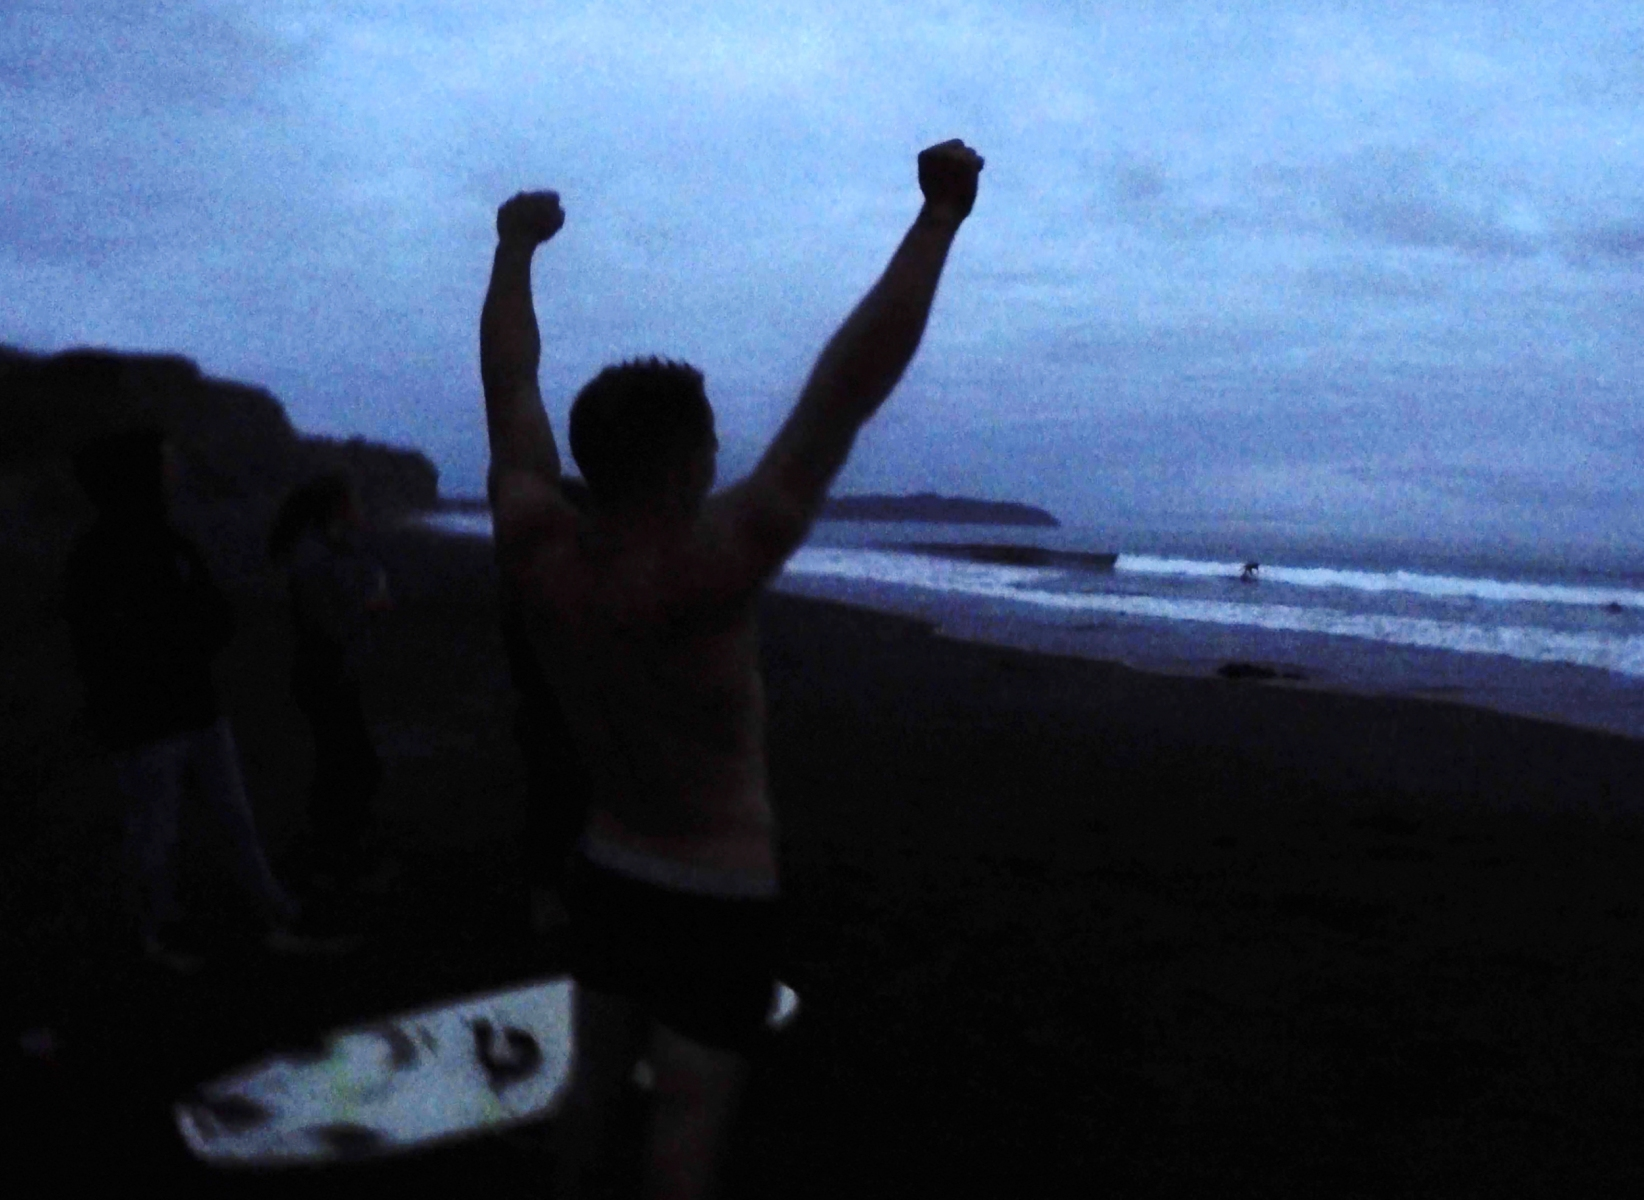 Andreas Carros cheers as Brayden Stevens surfs naked during a night surf session at a party, Saturday, August 1, 2020 at three mile beach